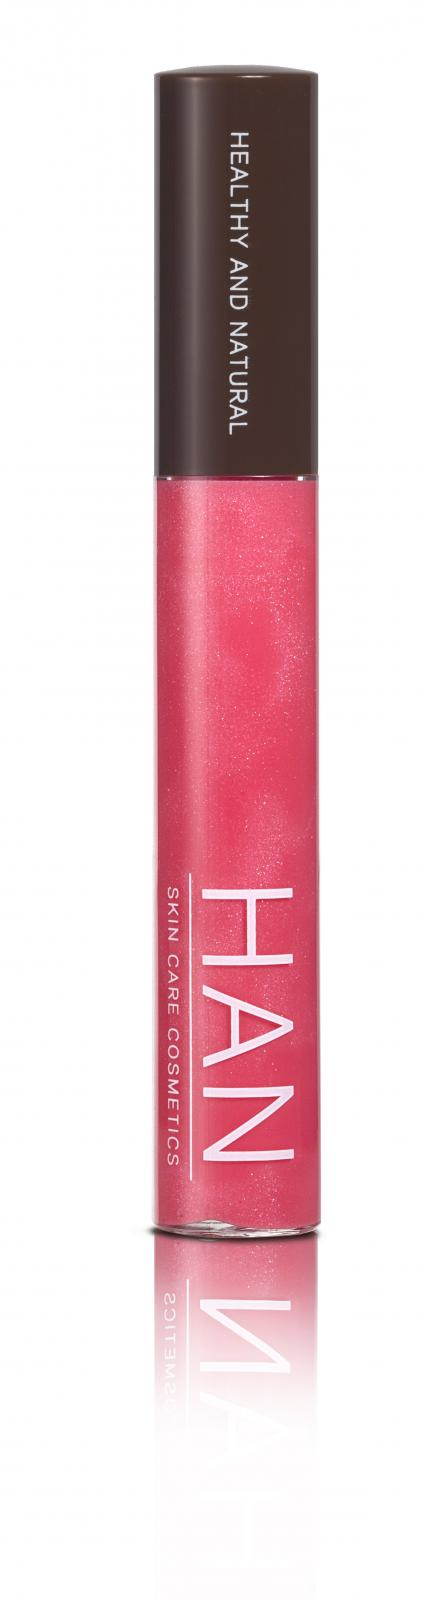 HAN Skin Care Cosmetics Lip Gloss - Pink Lemonade